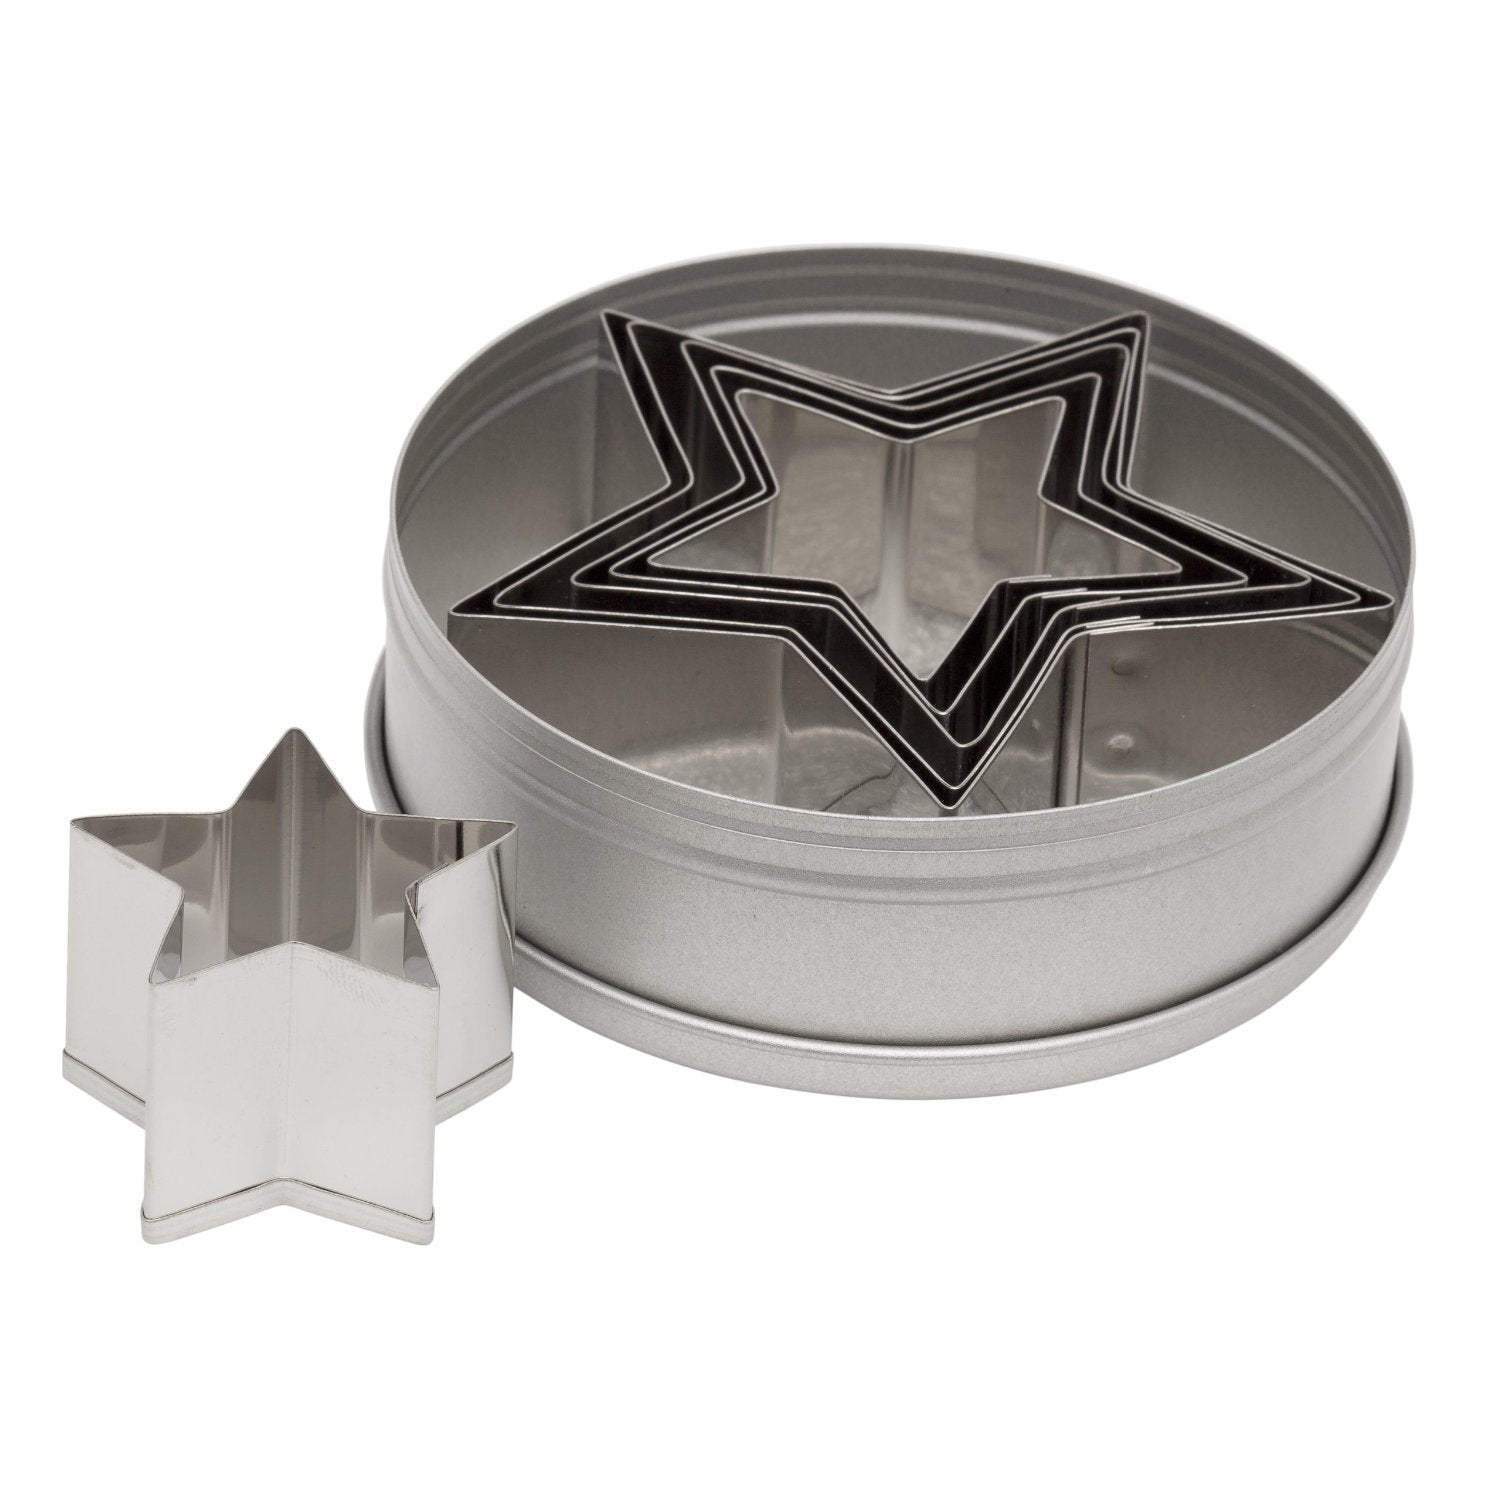 Ateco 7805 6-Piece Graduated Star Cookie Cutter Set